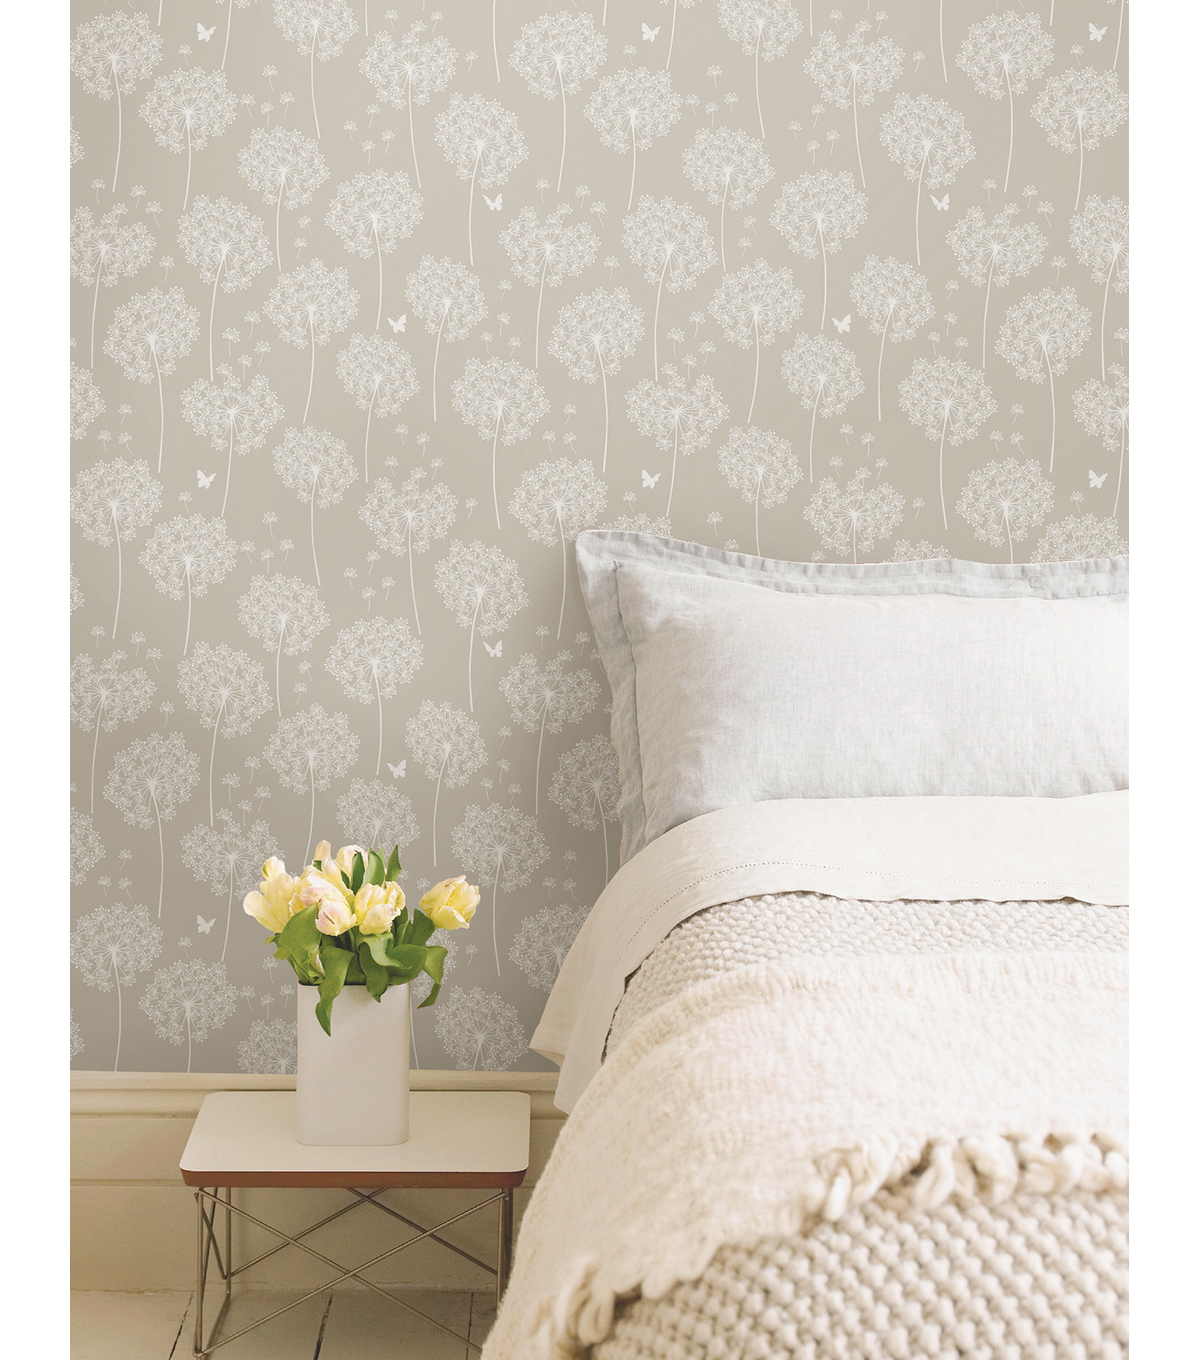 WallPops NuWallpaper Dandelion Taupe Peel And Stick Wallpaper